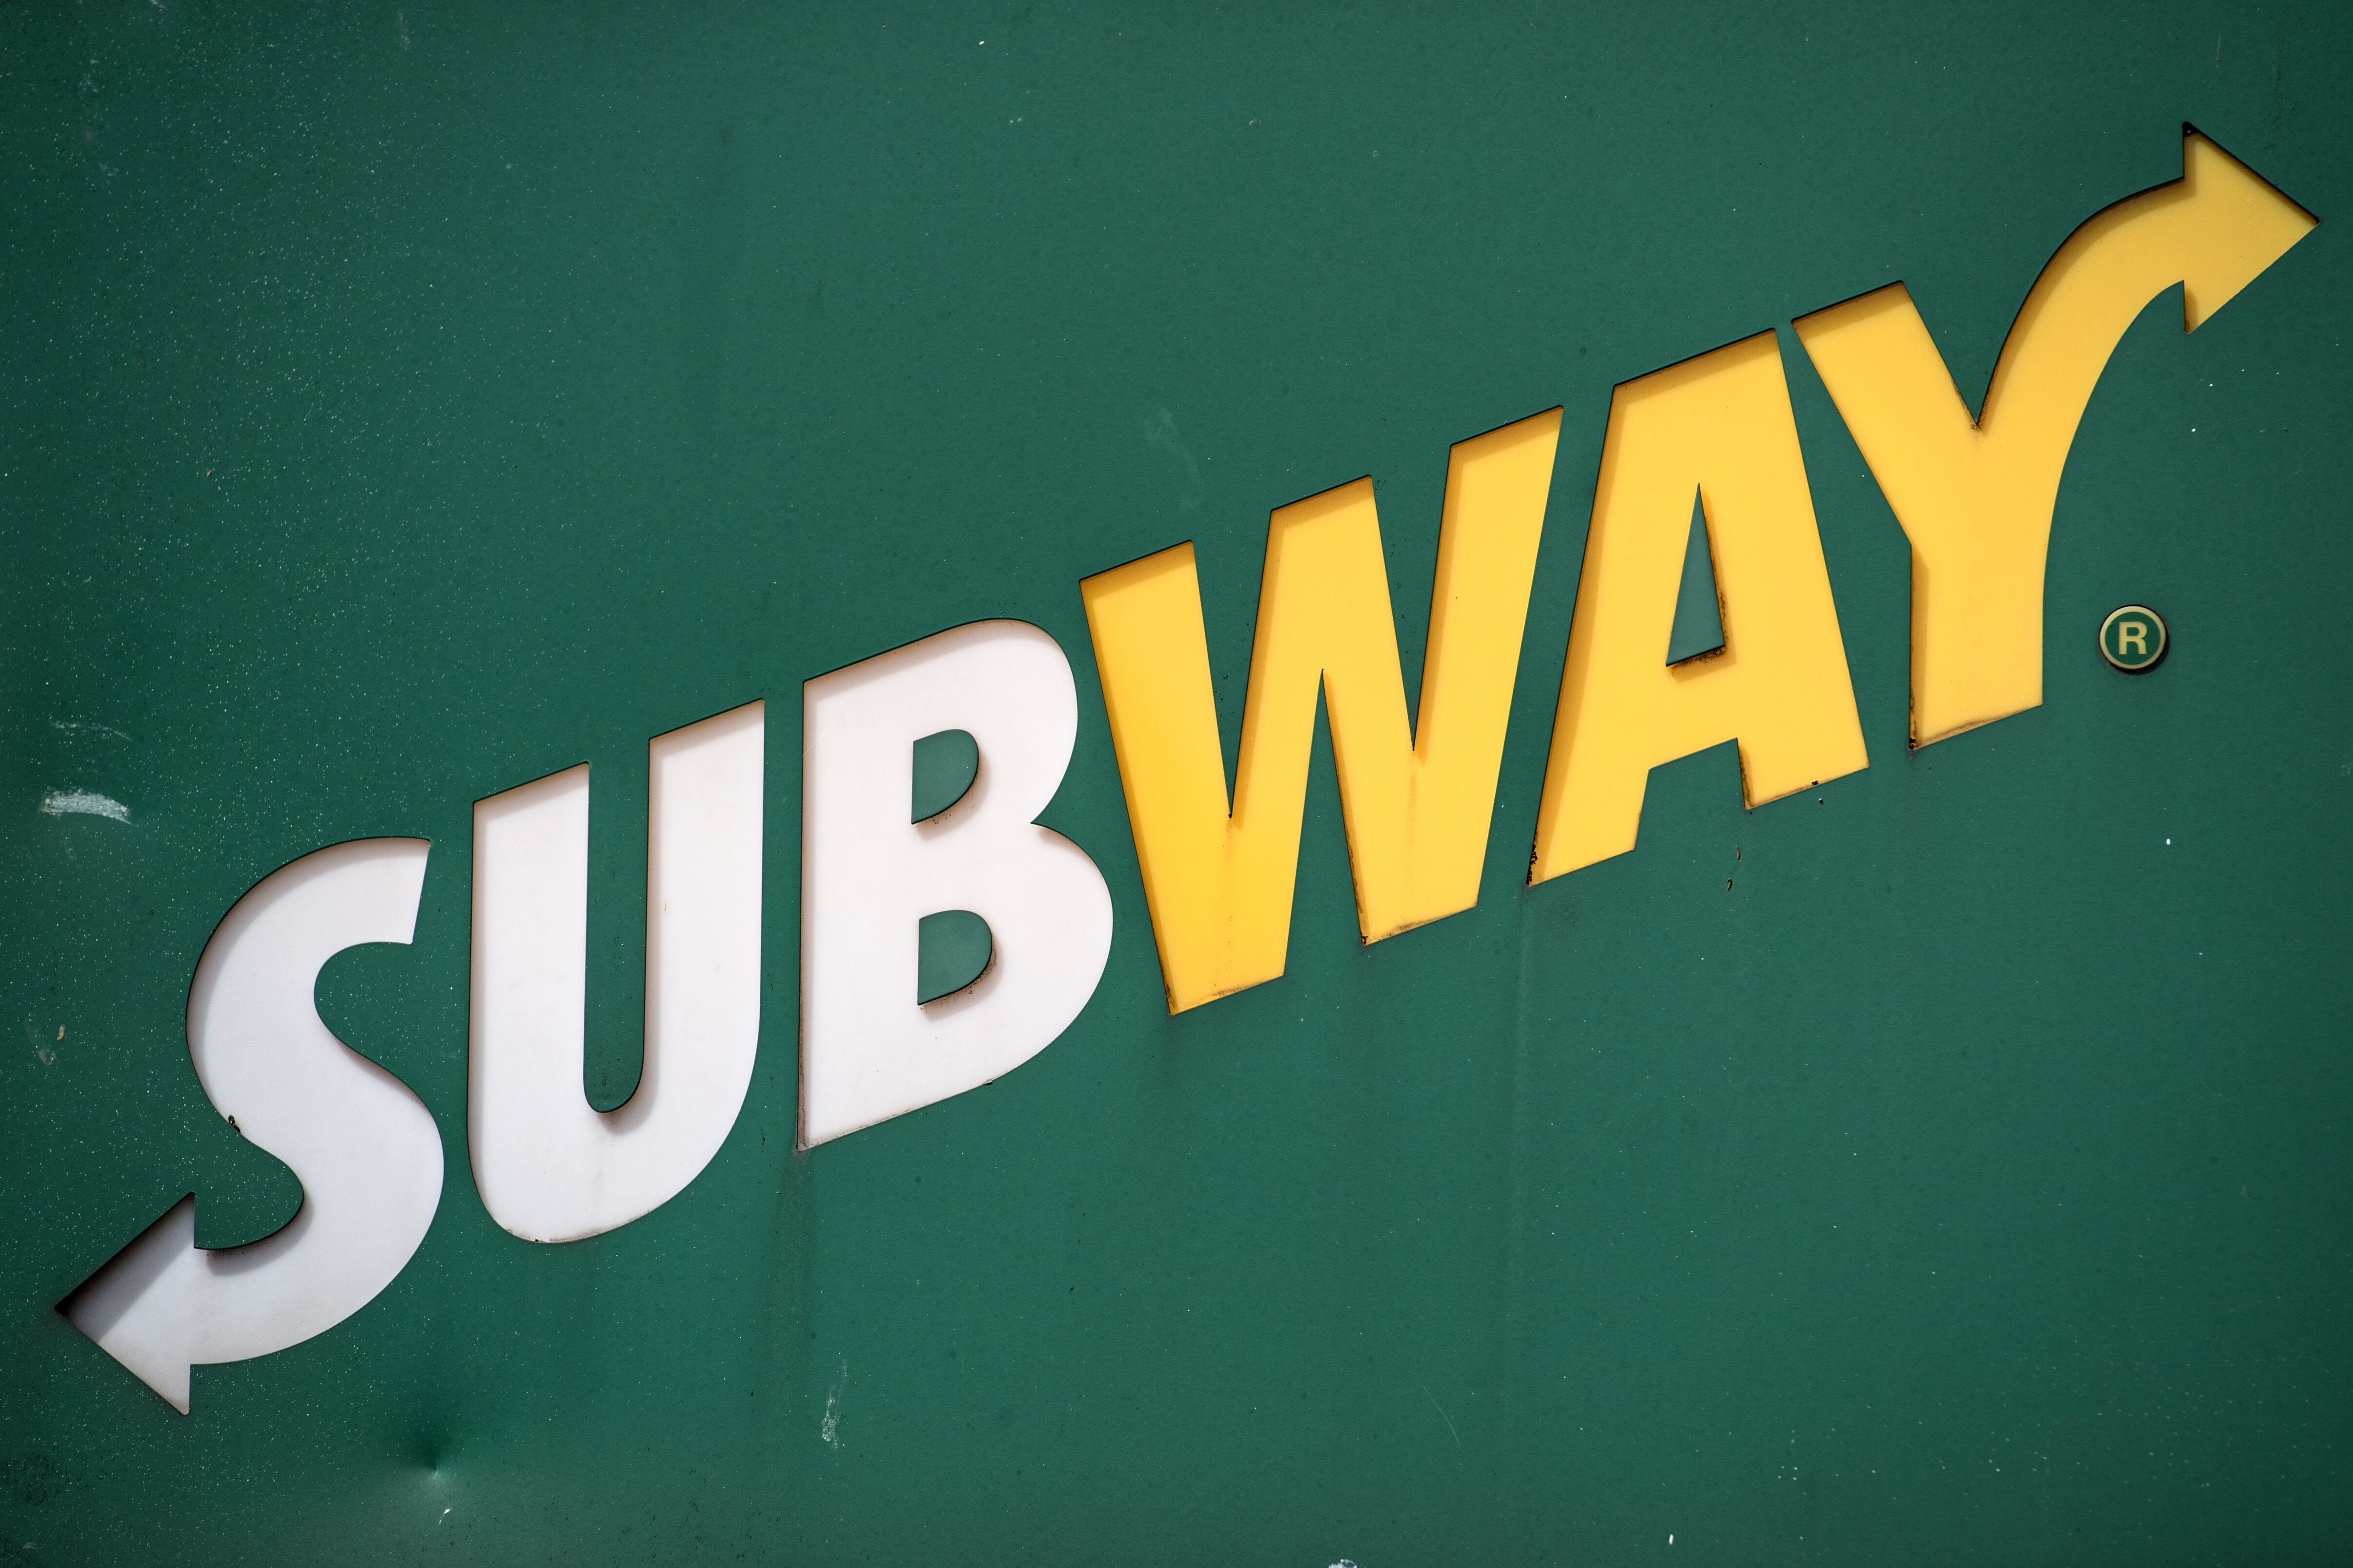 Is Subway open on Thanksgiving?